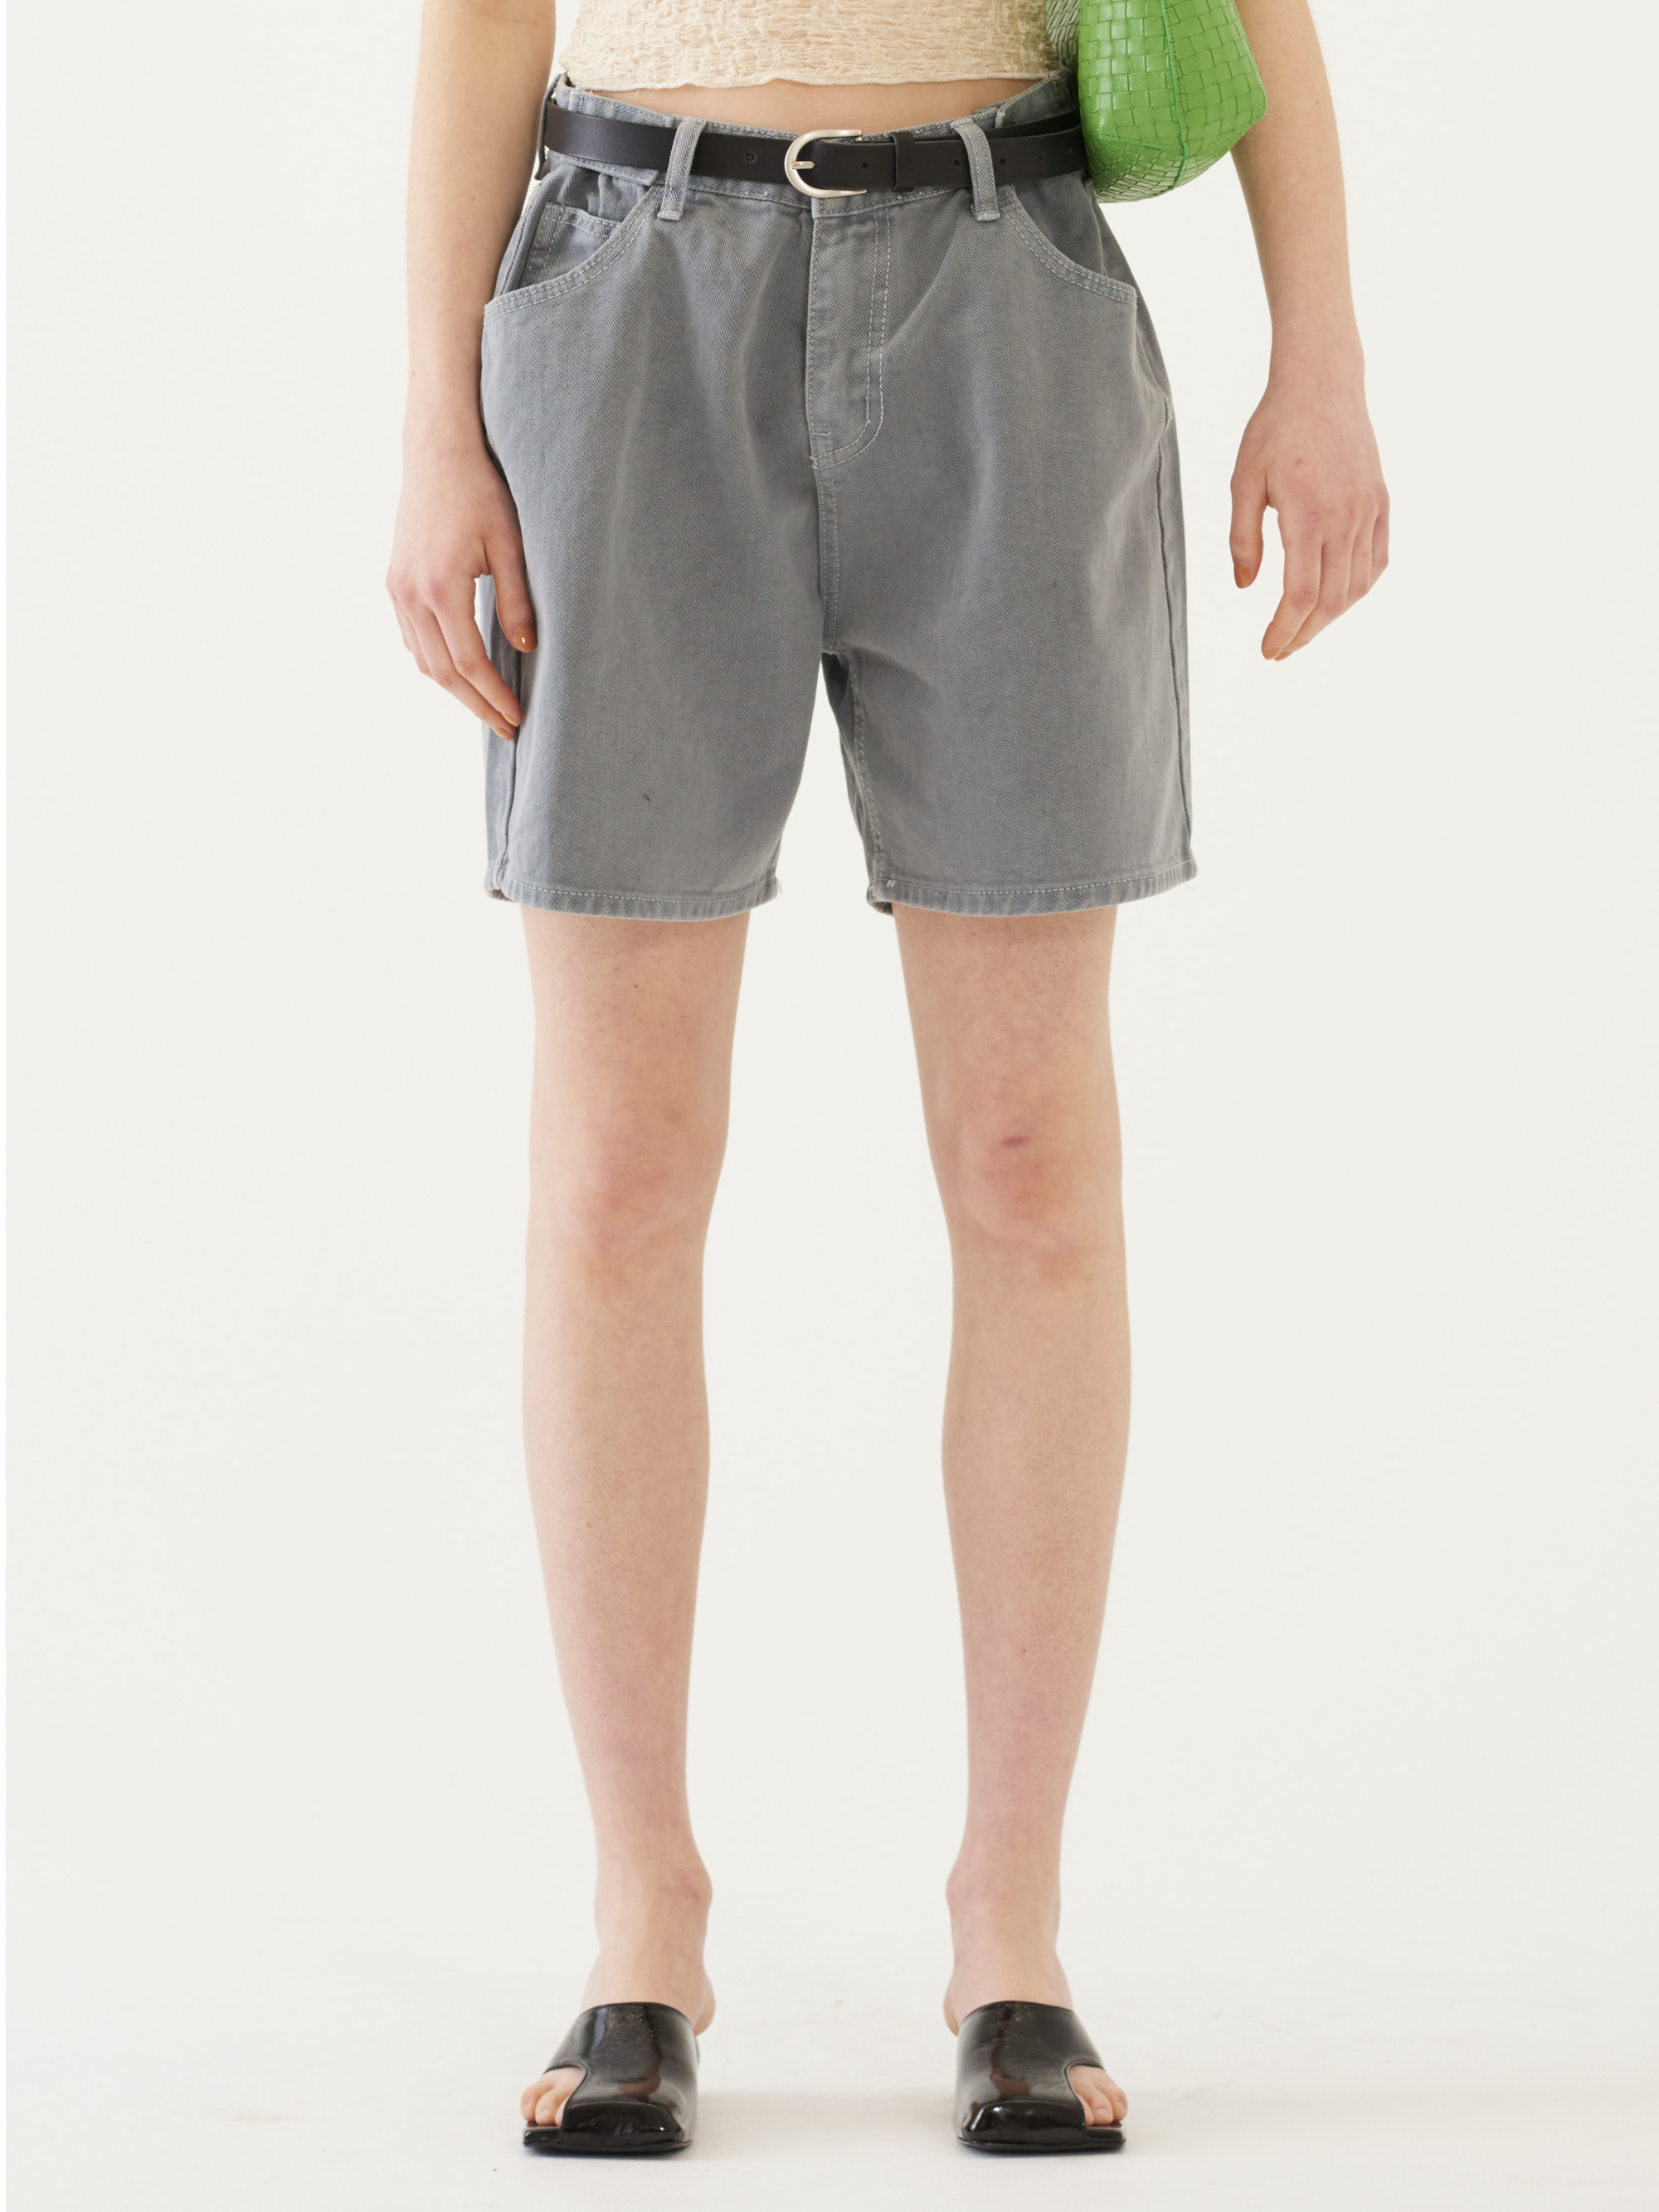 EXTENDER DENIM SHORTS (GRAY)